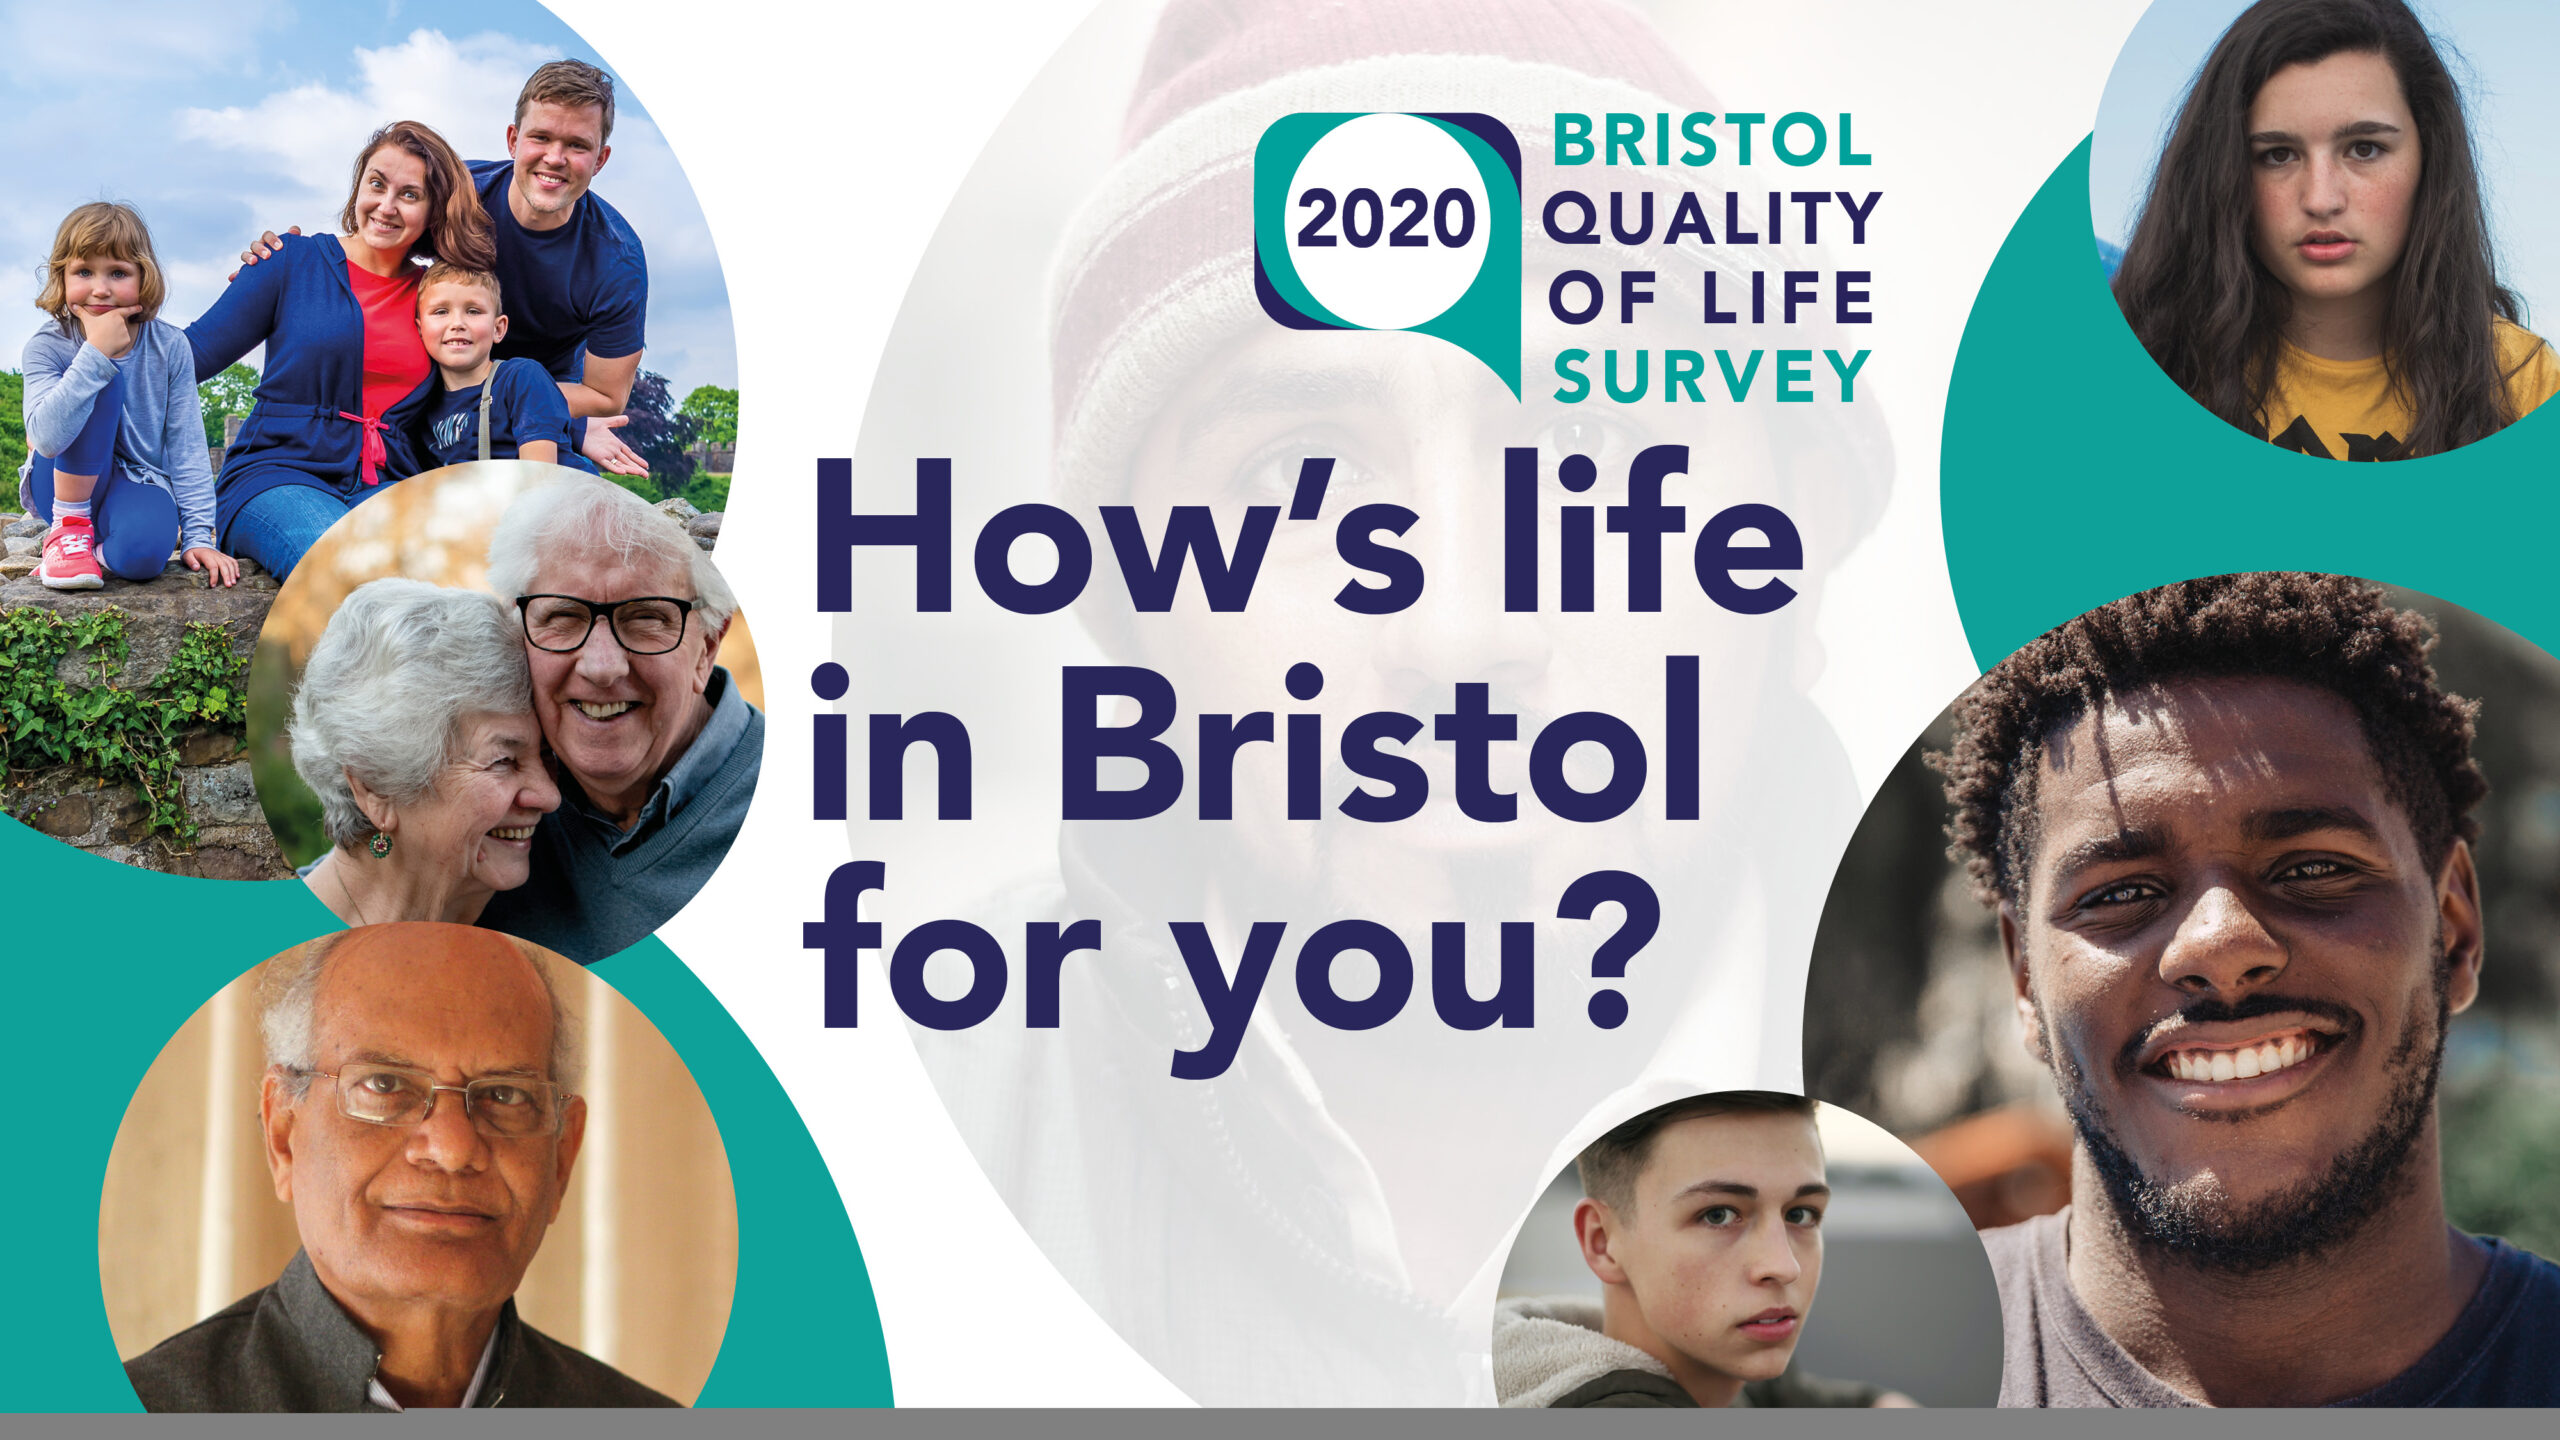 Bristol Quality of Life Survey